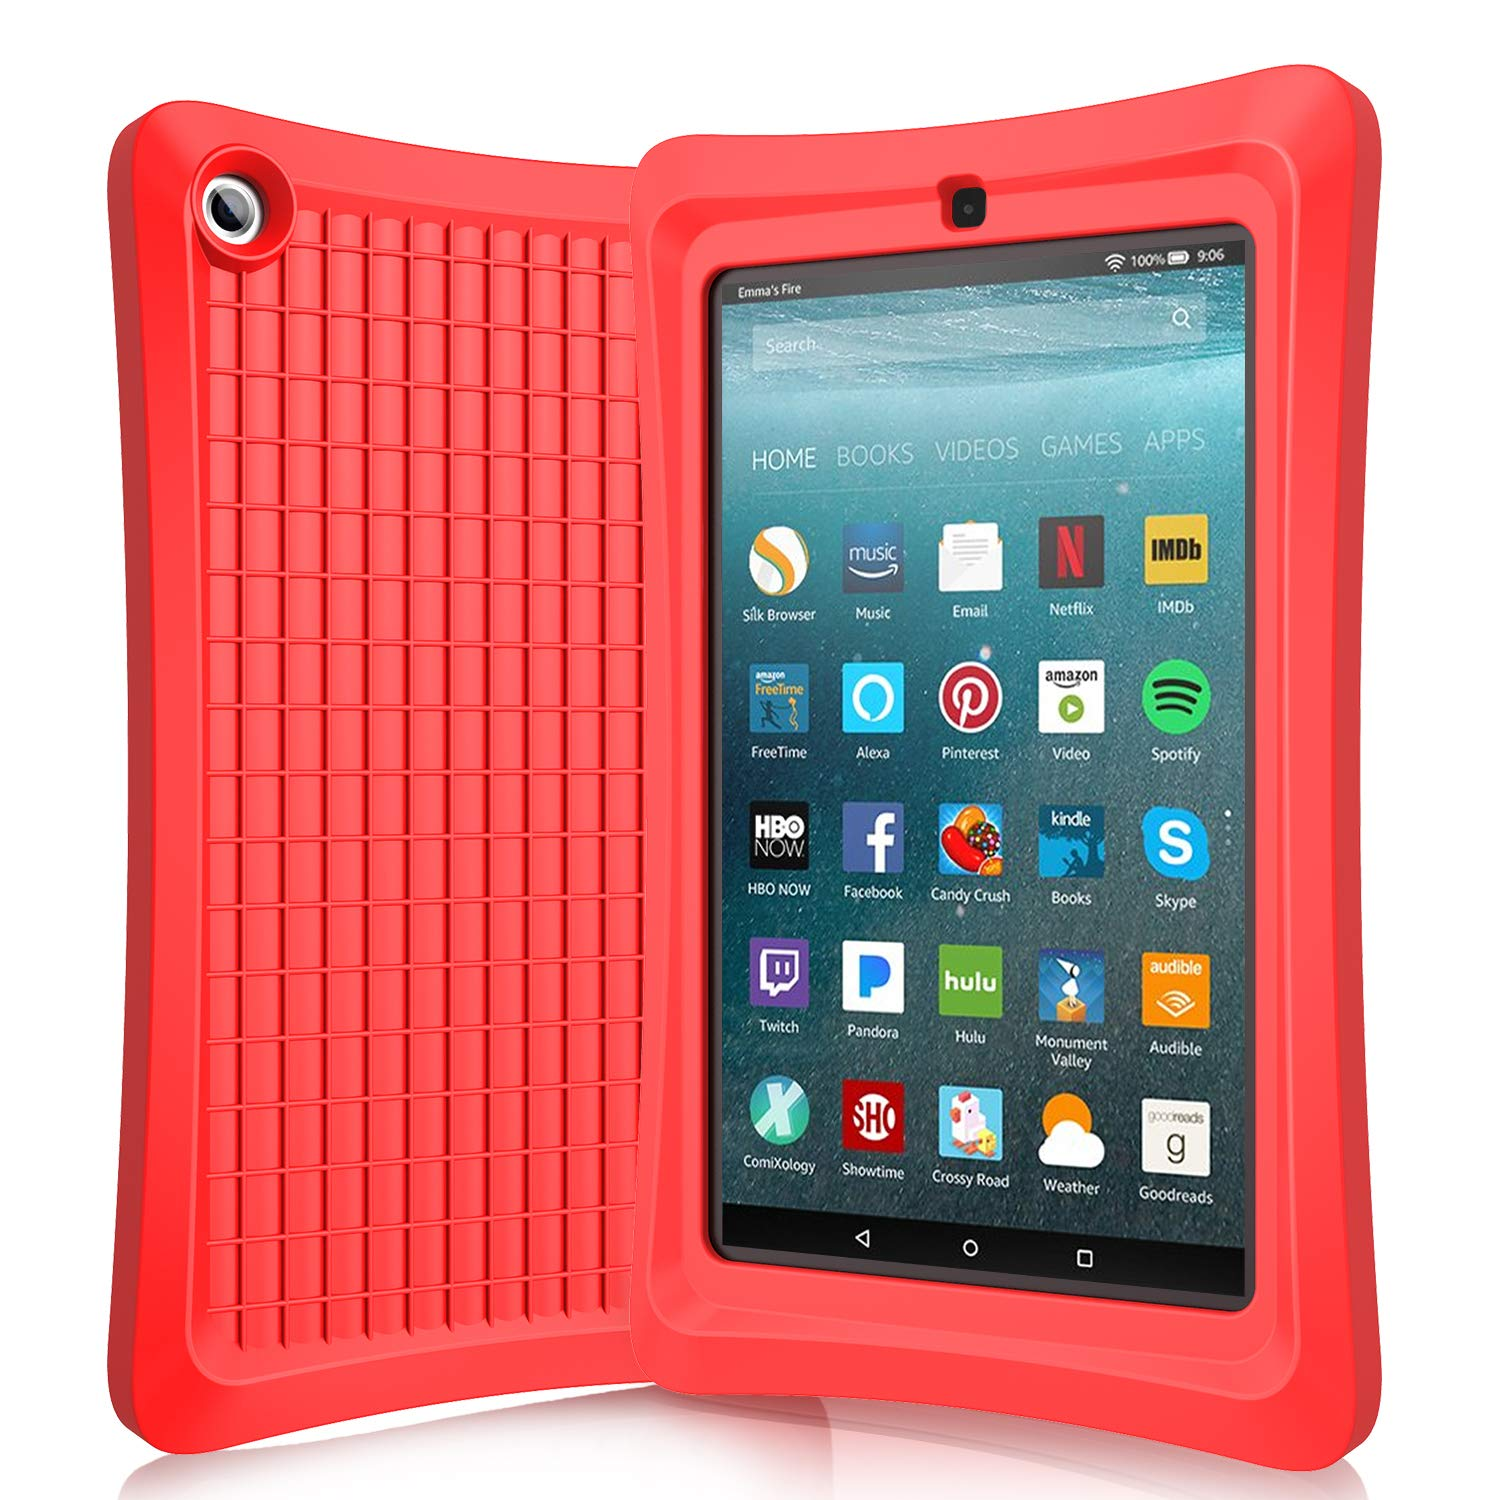 Benazcap Case for All-New Tablet 7 Inch 2019 9th Gen- Lightweight Rugged Shockproof Anti Slip Soft TPU Case Protective Kids Cover for 2019 Tablet 7 Inch 9th Gen, Red